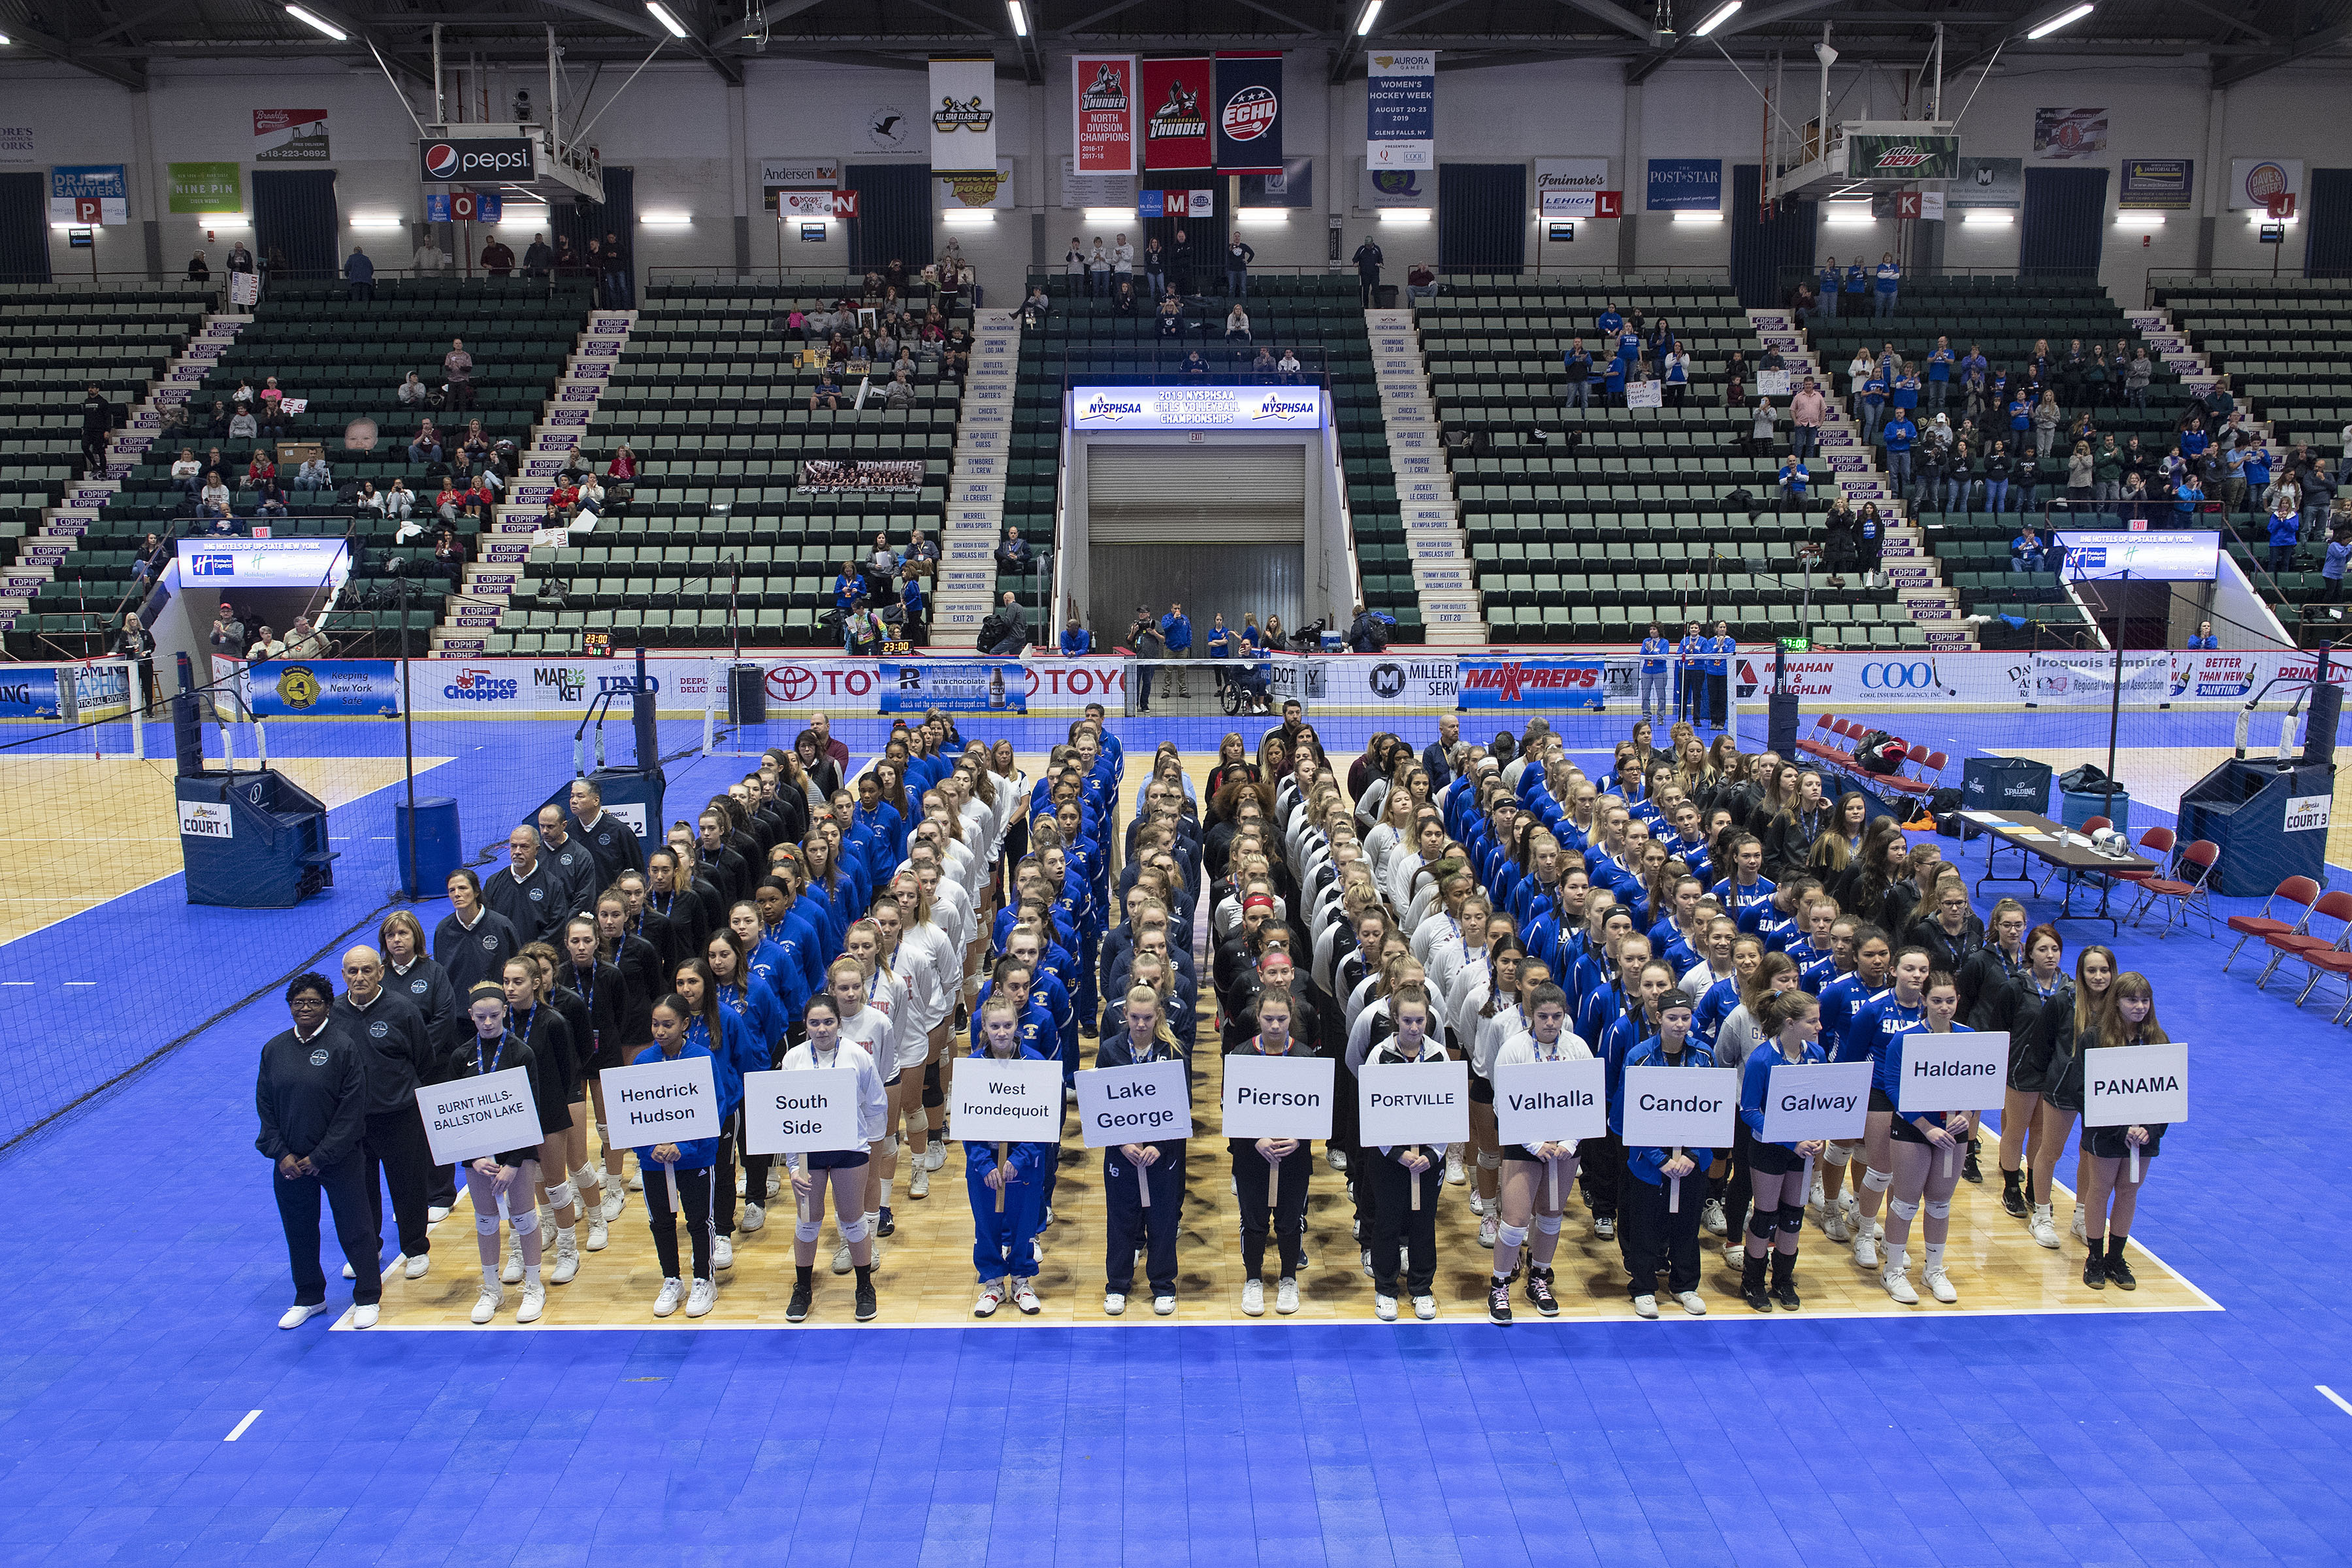 The Pierson/Bridgehampton girls volleyball team during the opening ceremony of the New York State Championships at Cool Insuring Arena in Glens Falls on Saturday morning.